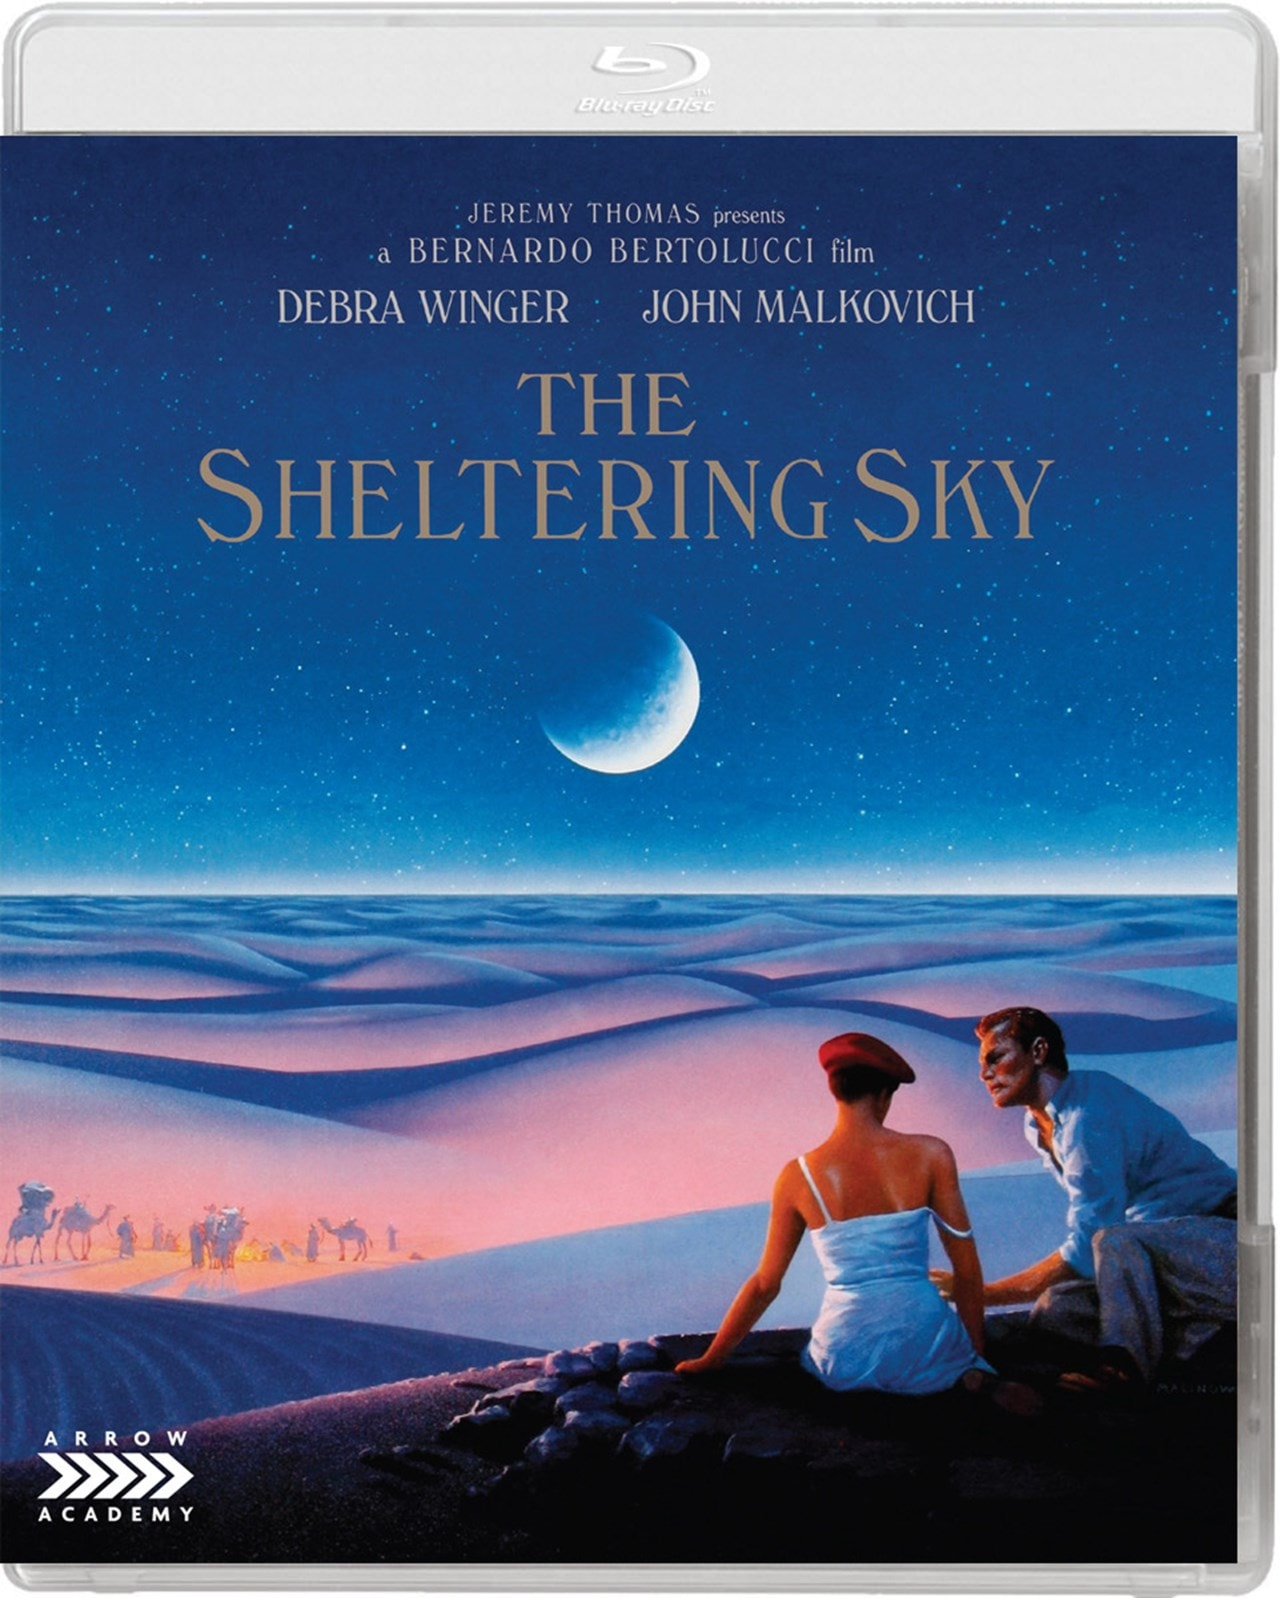 The Sheltering Sky - 1